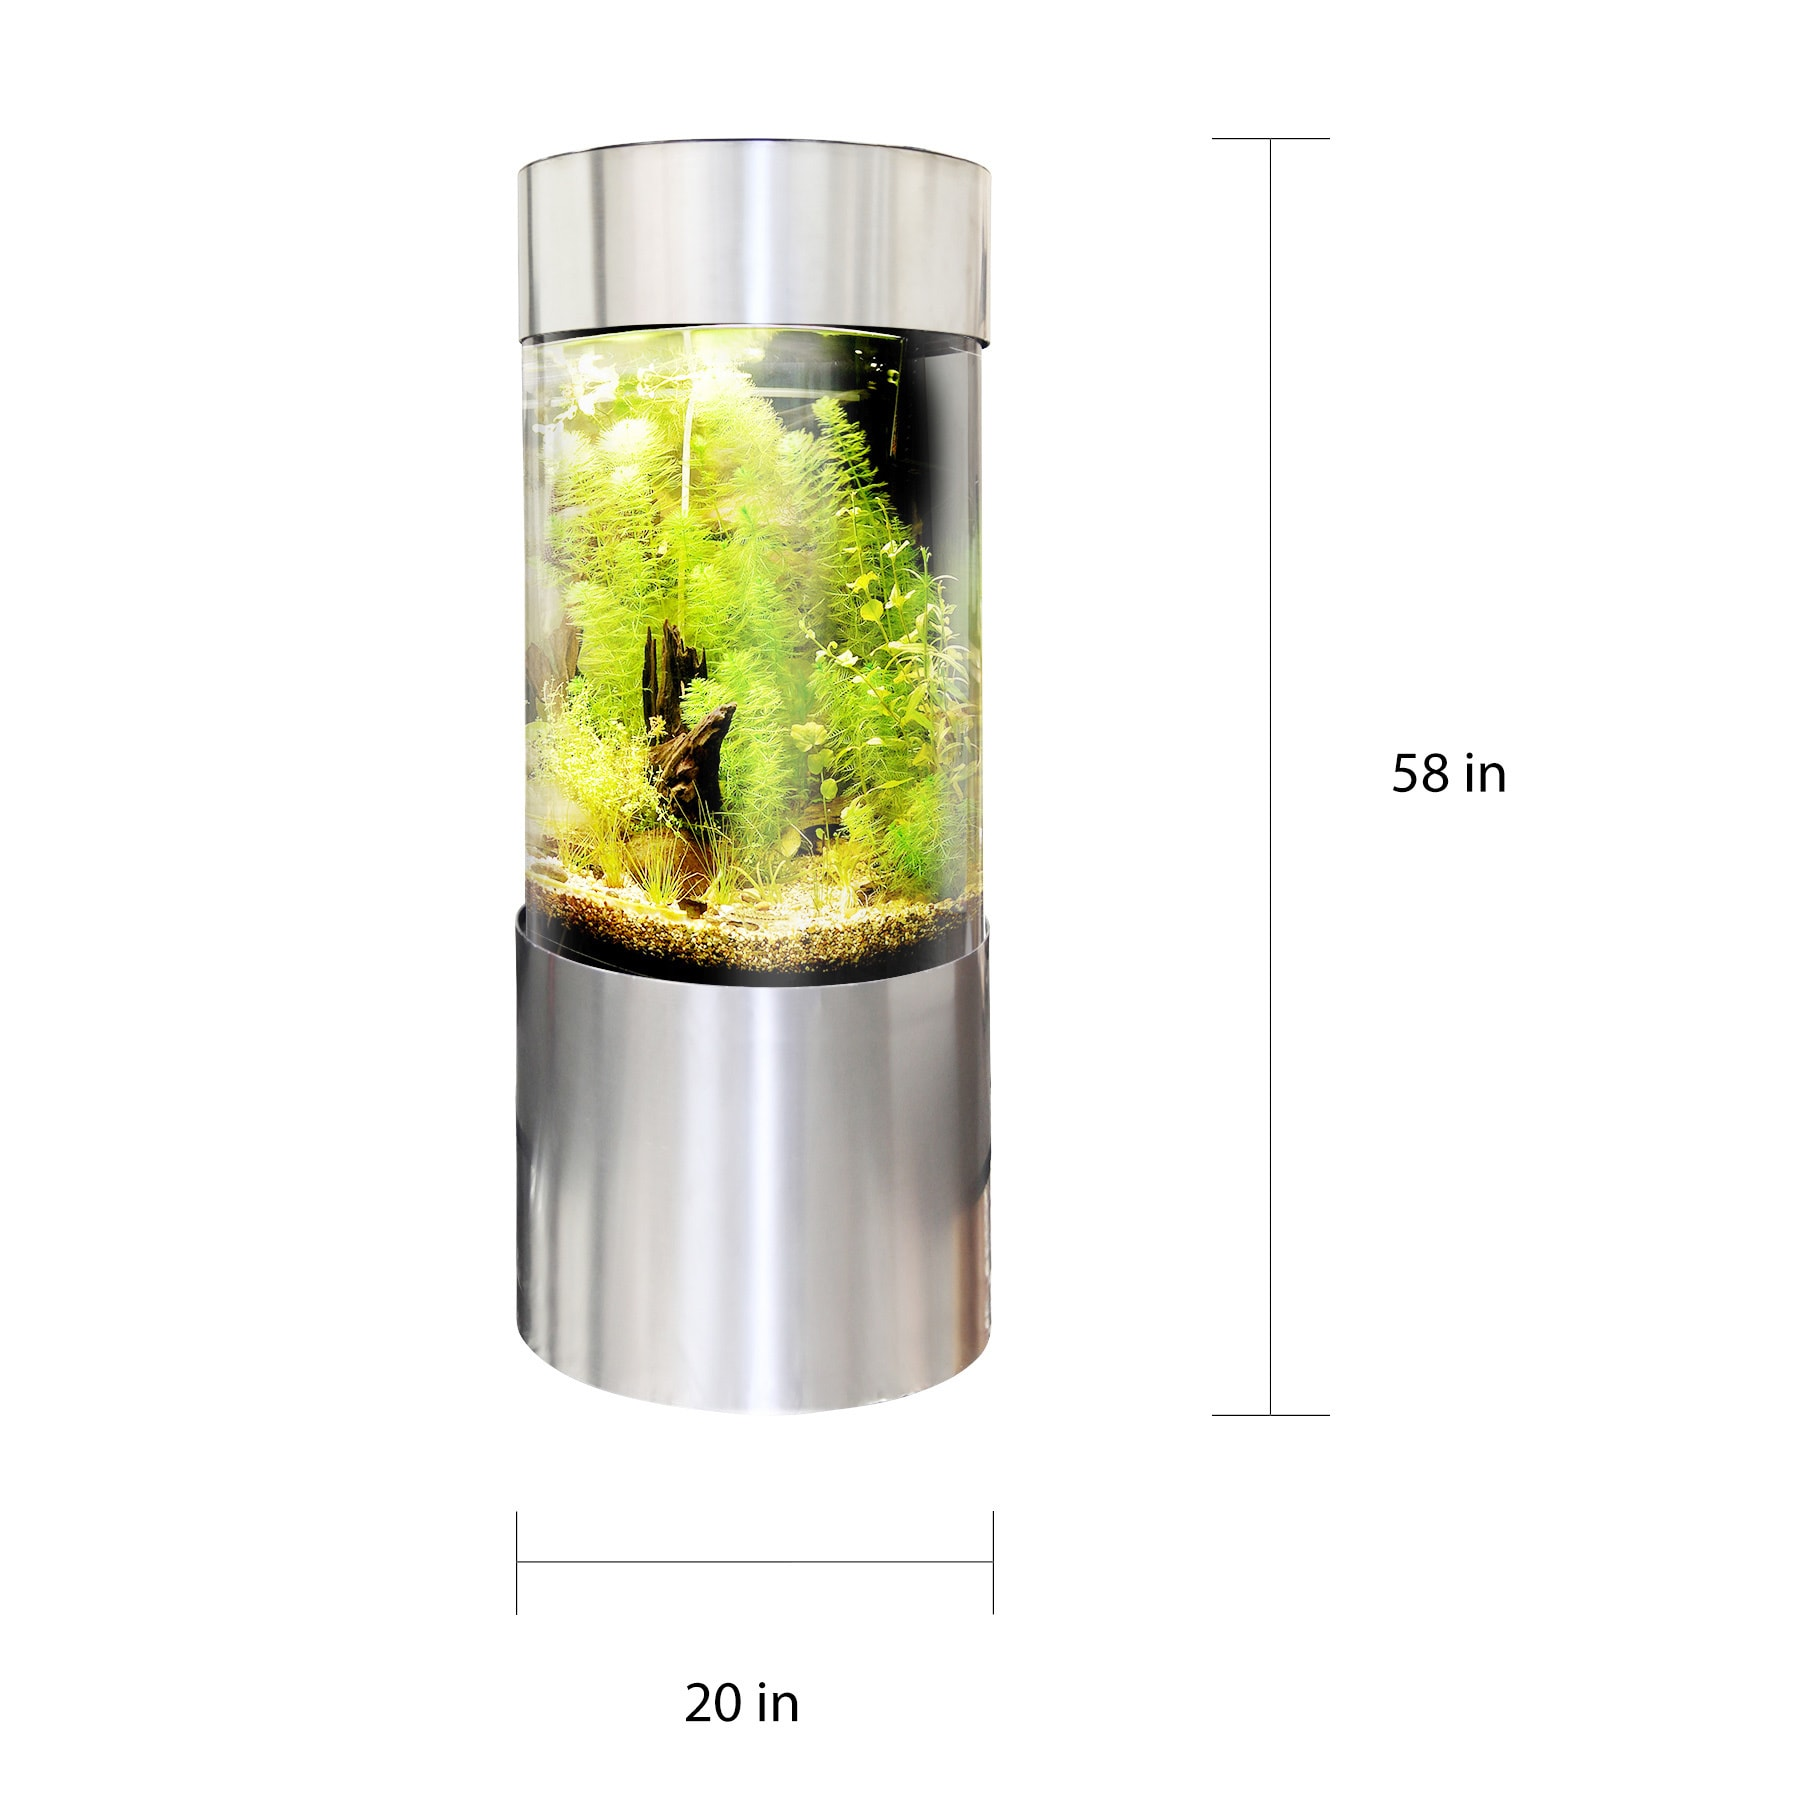 Vapotek 360 Clear Acrylic And Plastic Cylinder Fish Tank With Stainless Steel Trim Free Shipping Today 12038686